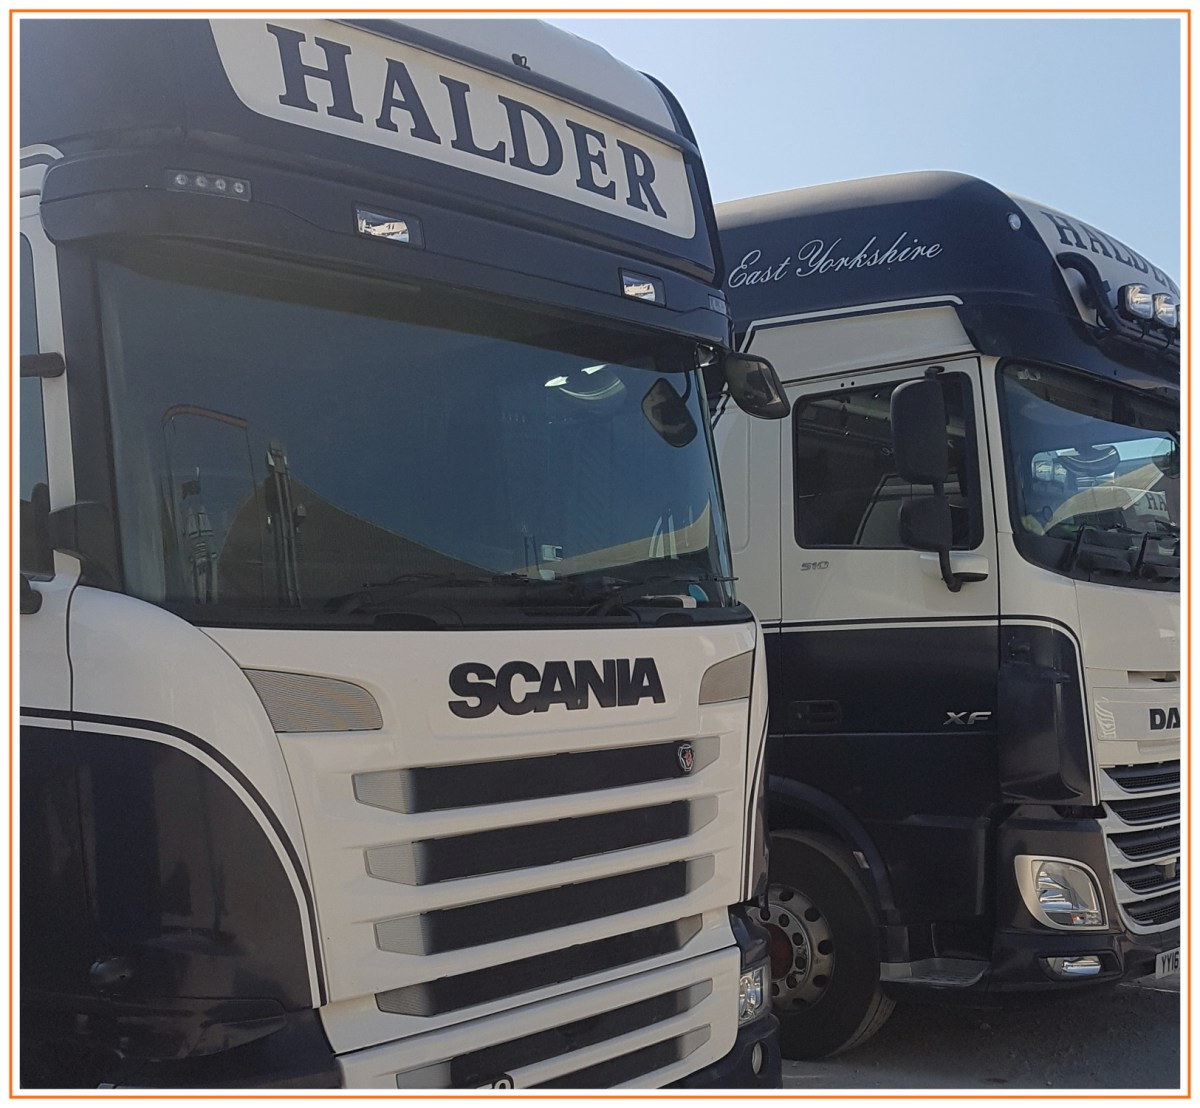 https://i1.wp.com/haultech.co.uk/wp-content/uploads/2021/07/HaulTechs-Customers-Weigh-in-on-the-UK-Government-Extending-Drivers-Working-Hours.jpg?fit=1200%2C1108&ssl=1